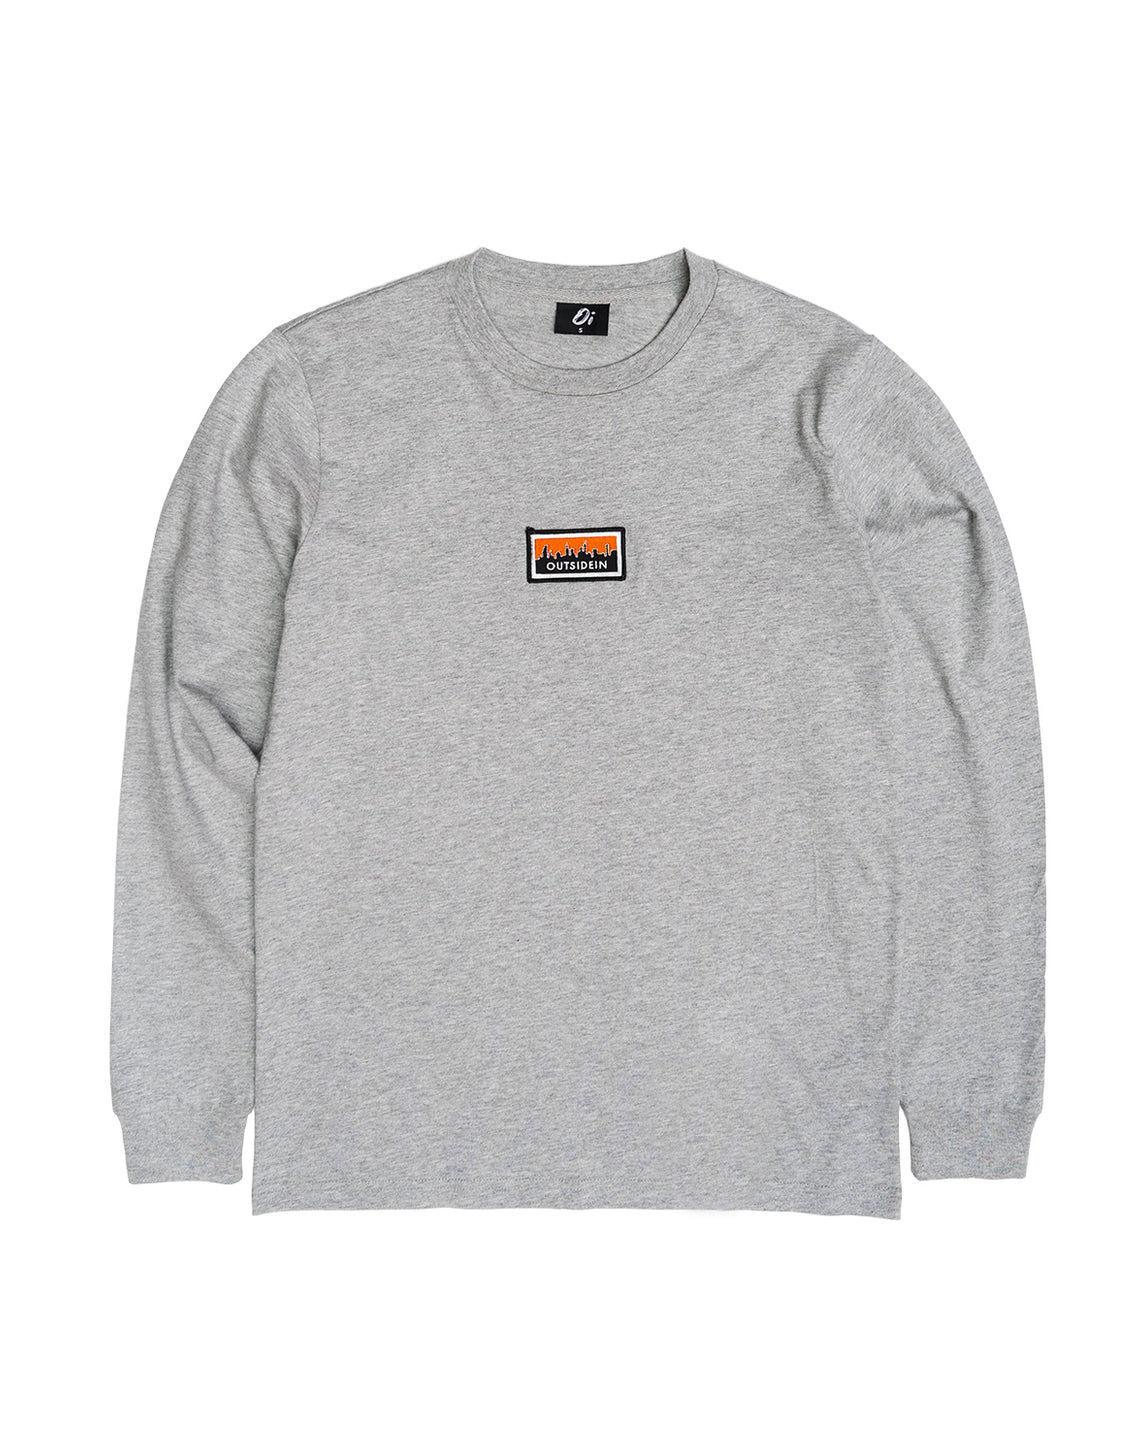 Cityscape Long Sleeve T-Shirt Grey - OutsideIn